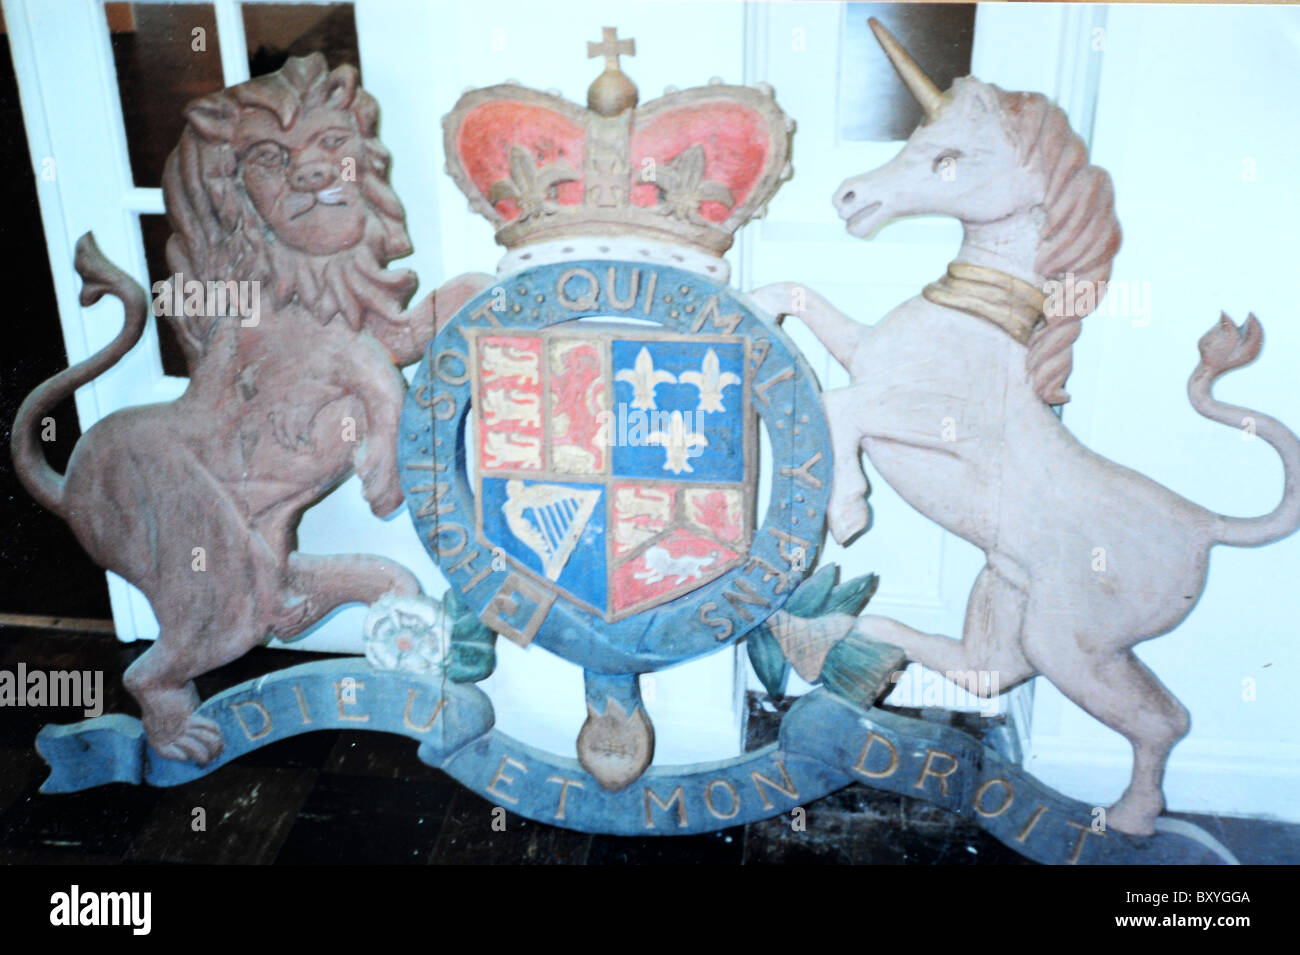 English royal emblem displayed atop curtain at Dock Street theater, Charleston, SC - Stock Image